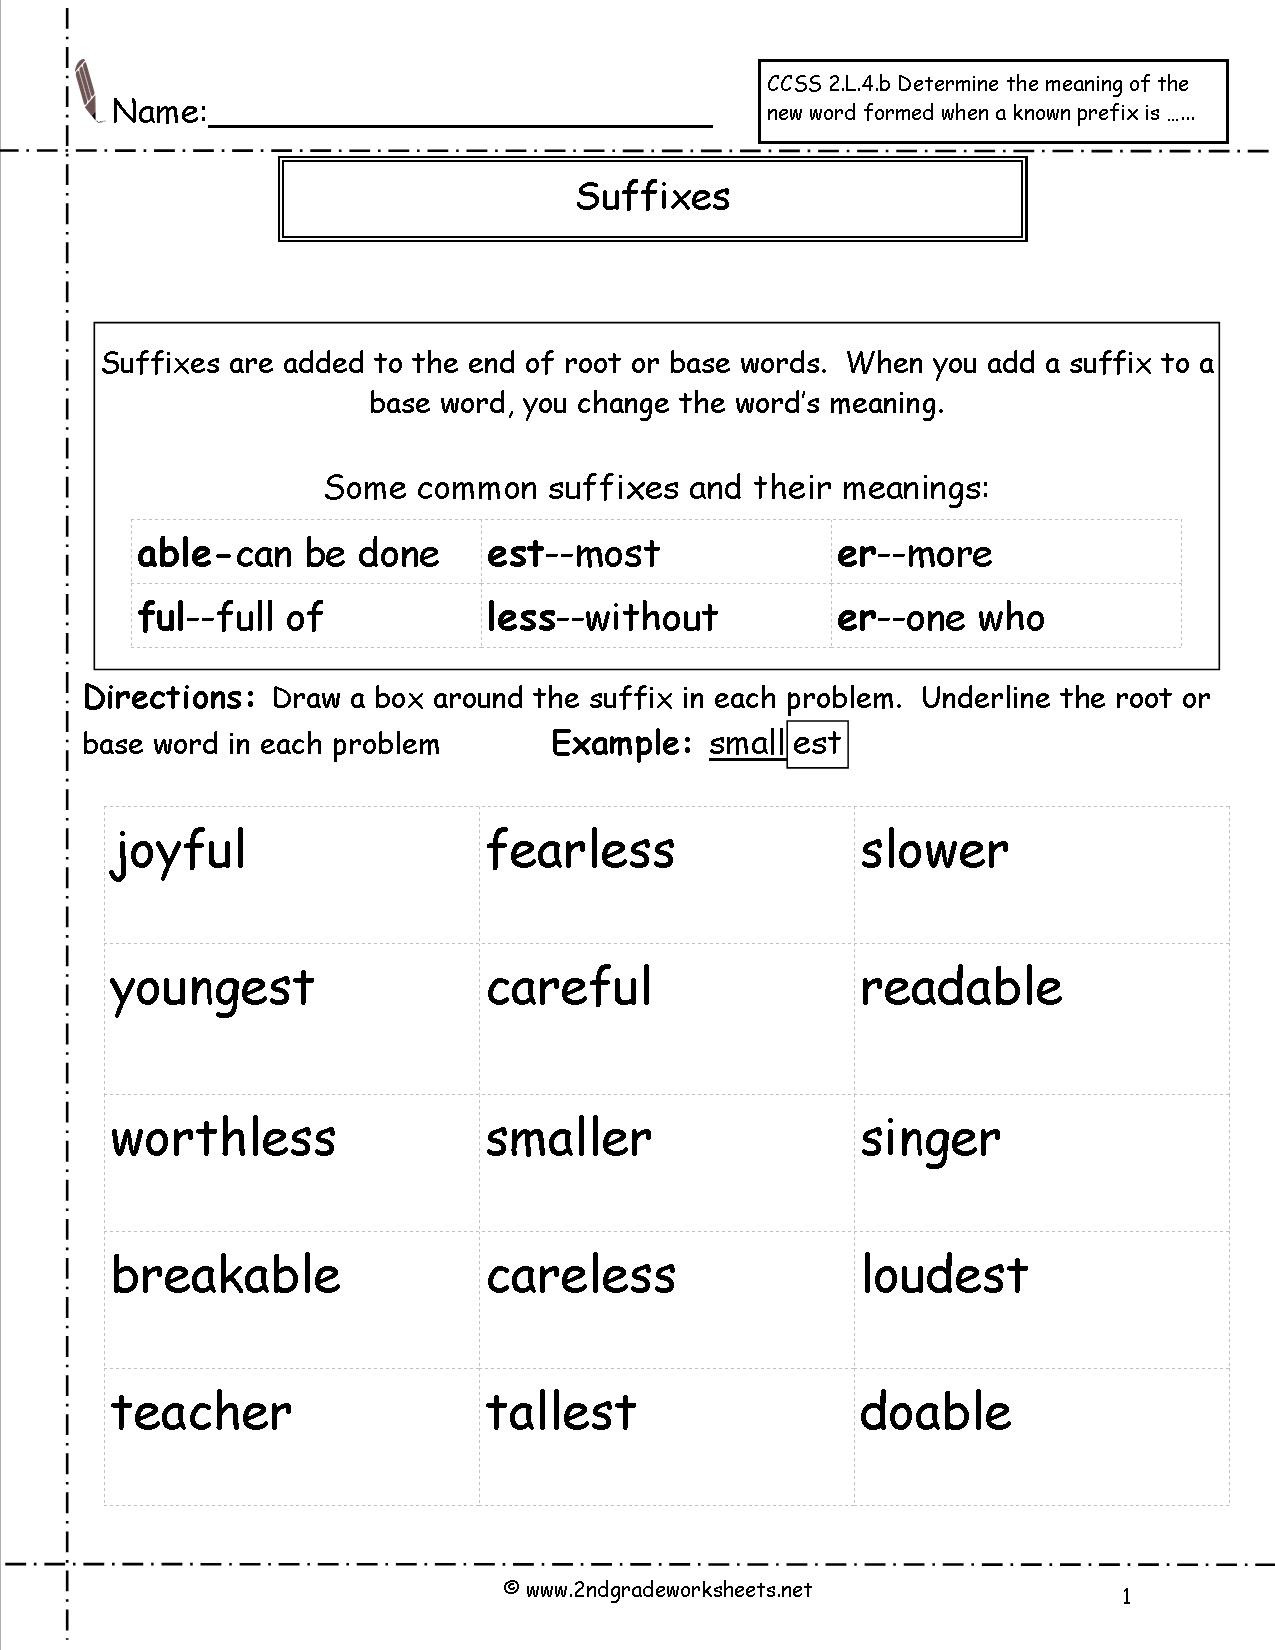 Suffixes Worksheets for 2nd Grade Second Grade Prefixes Worksheets